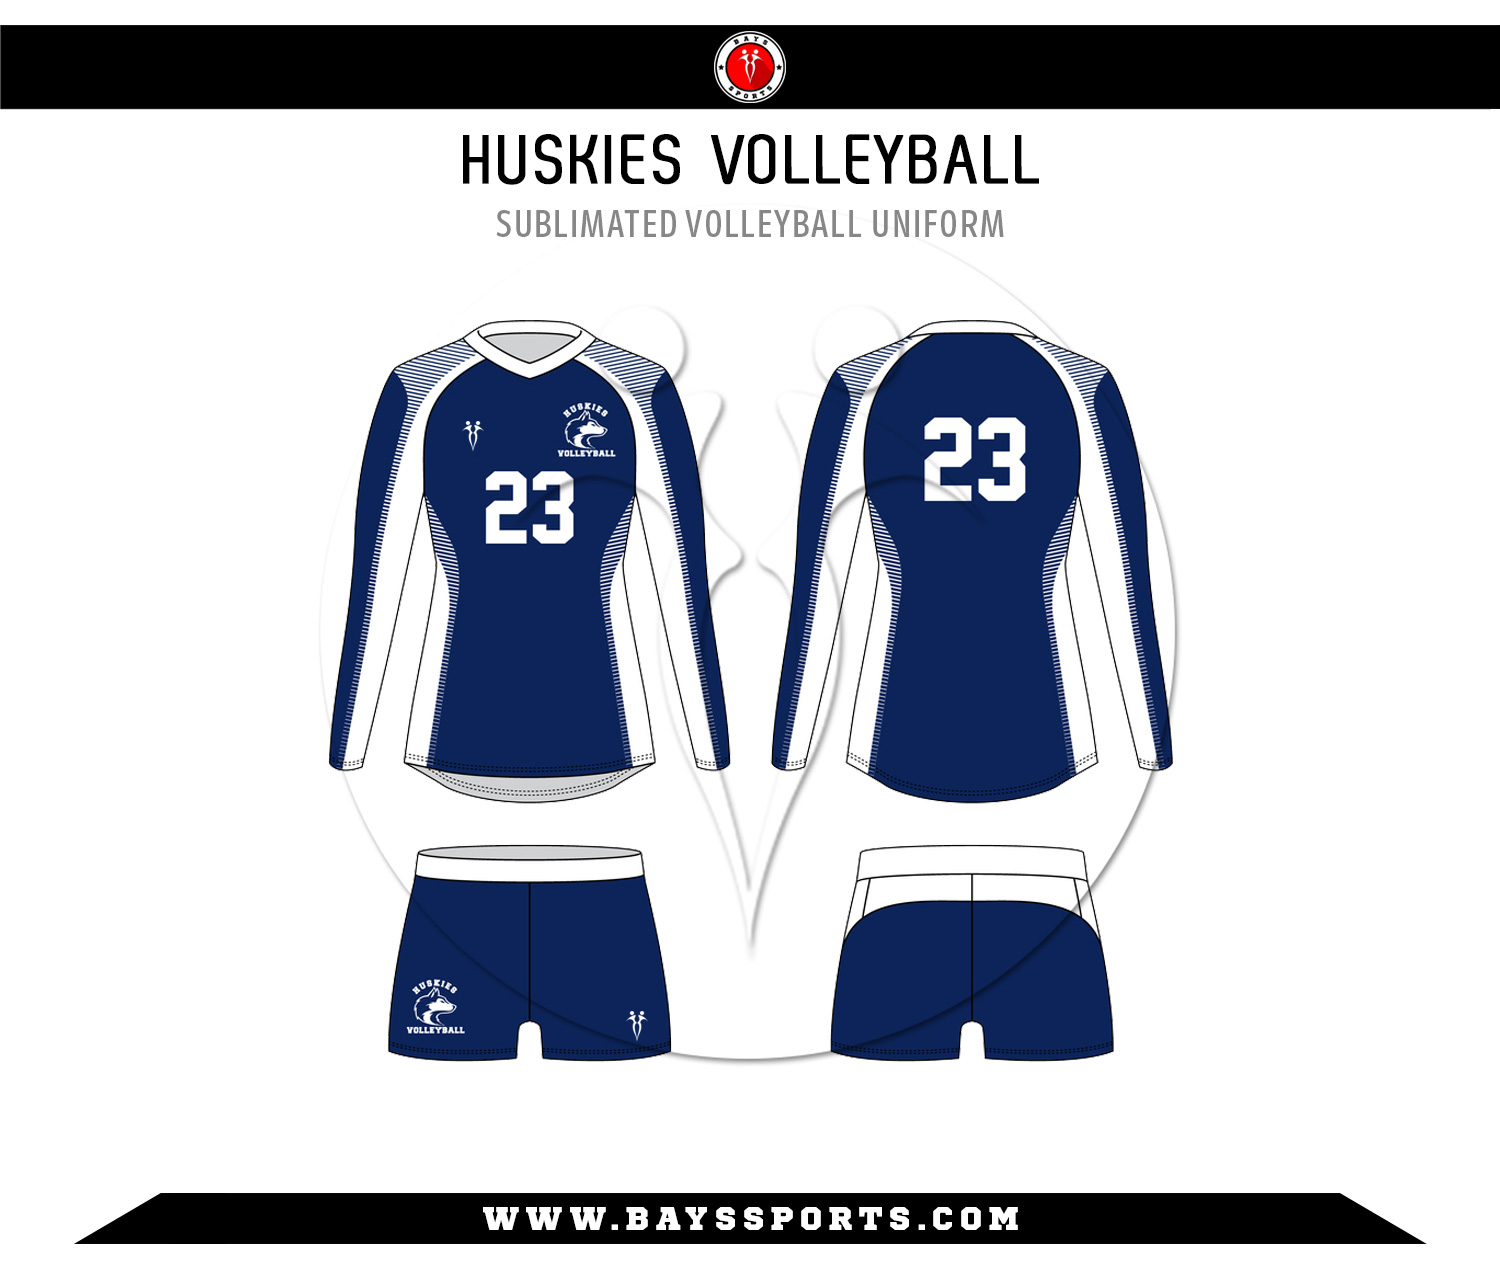 Sublimated Volleyball Uniform